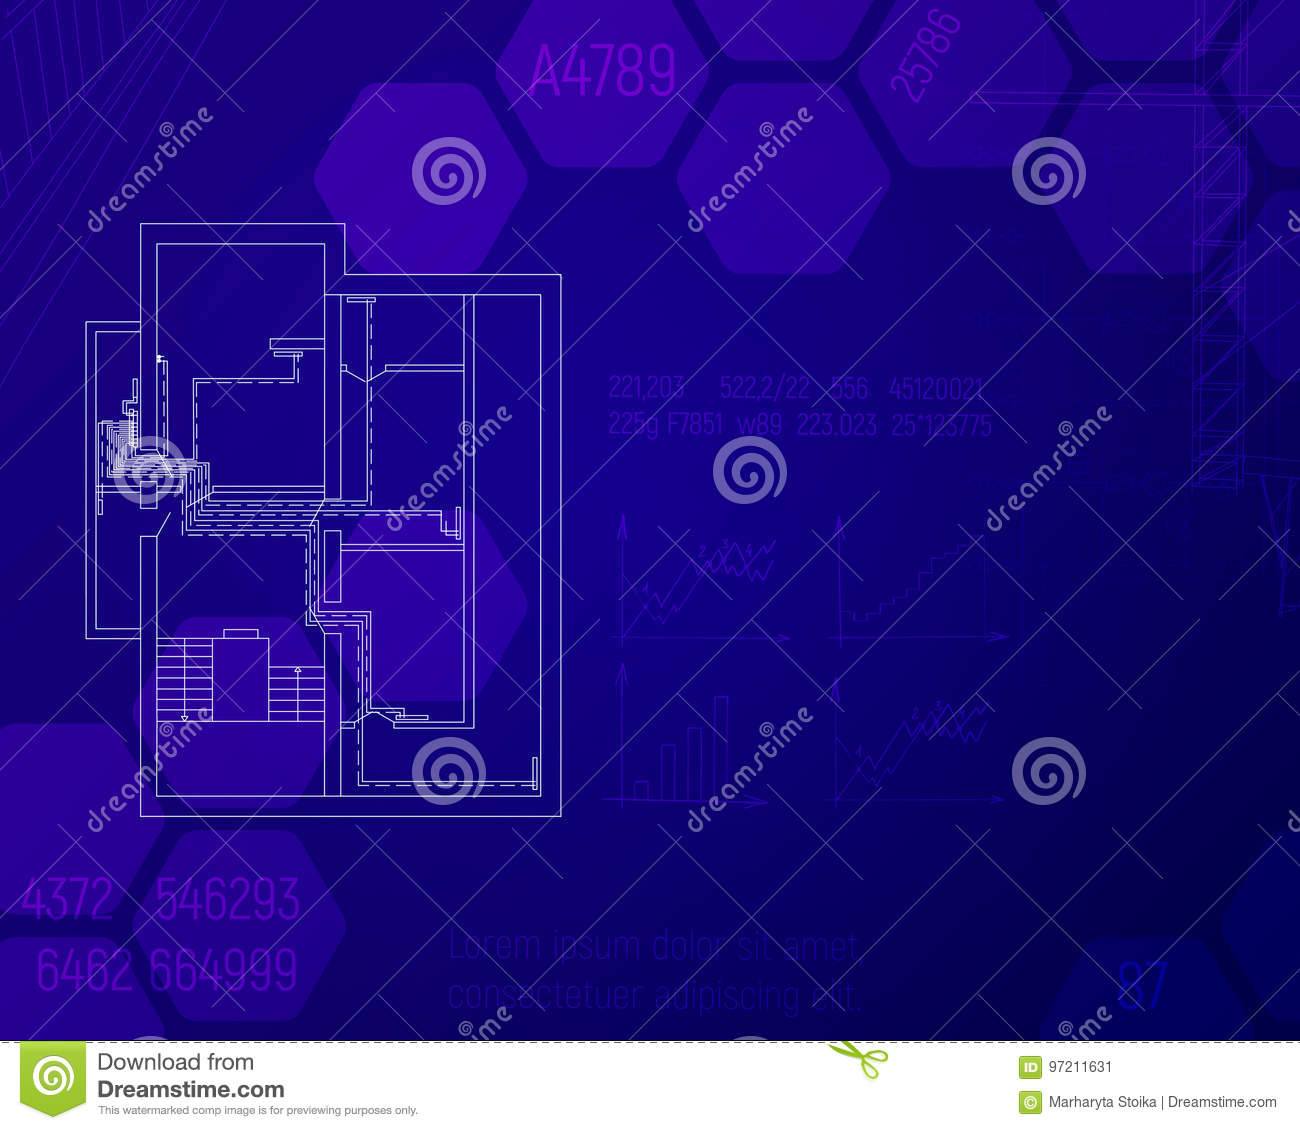 Engineering Draft Of Heating System In The House Concept Hvac Drawing Pictures Blue Sketch Technical